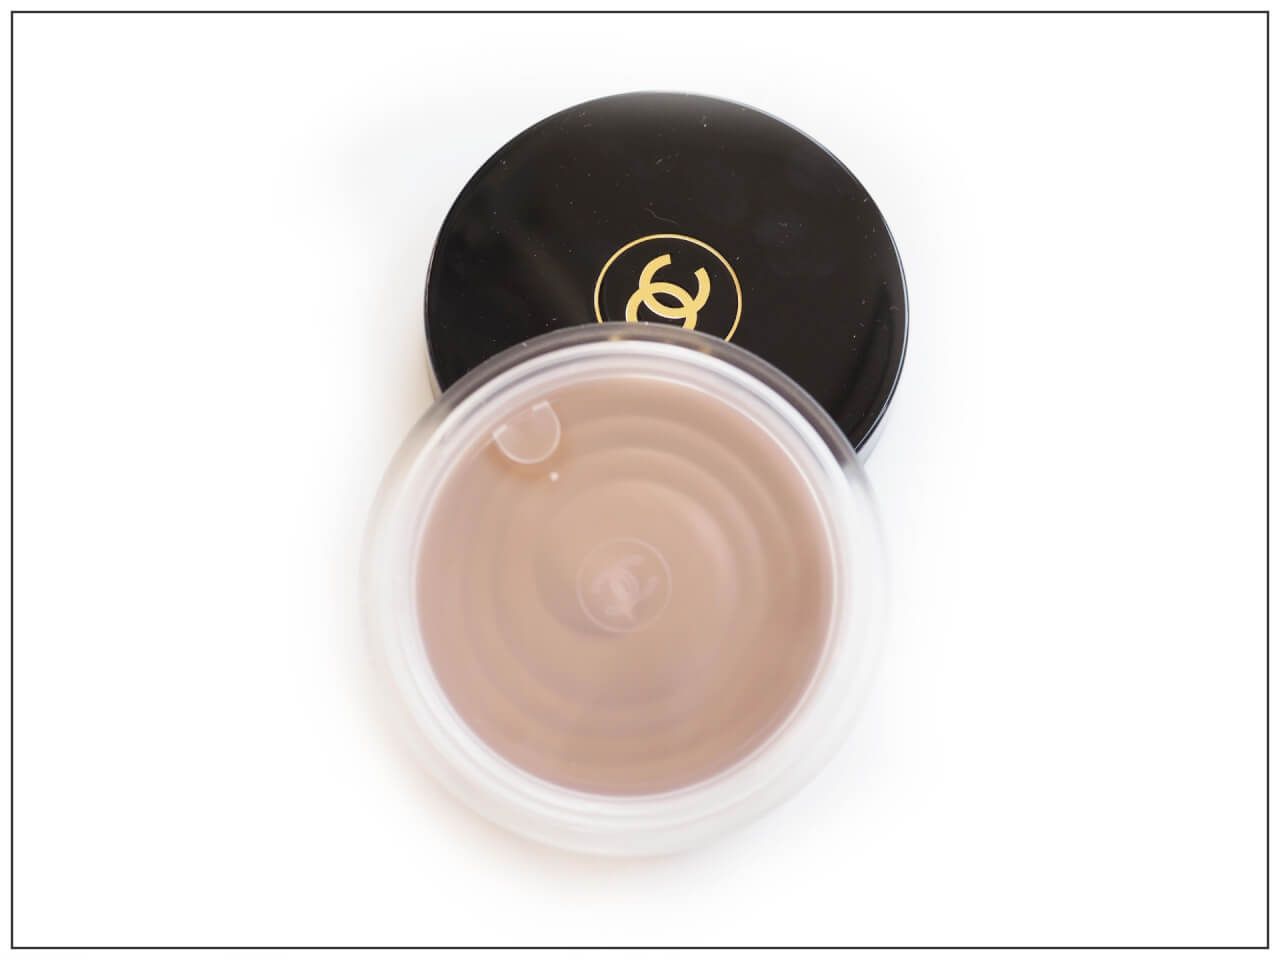 Chanel Soleil Tan Bronzing Makeup Base